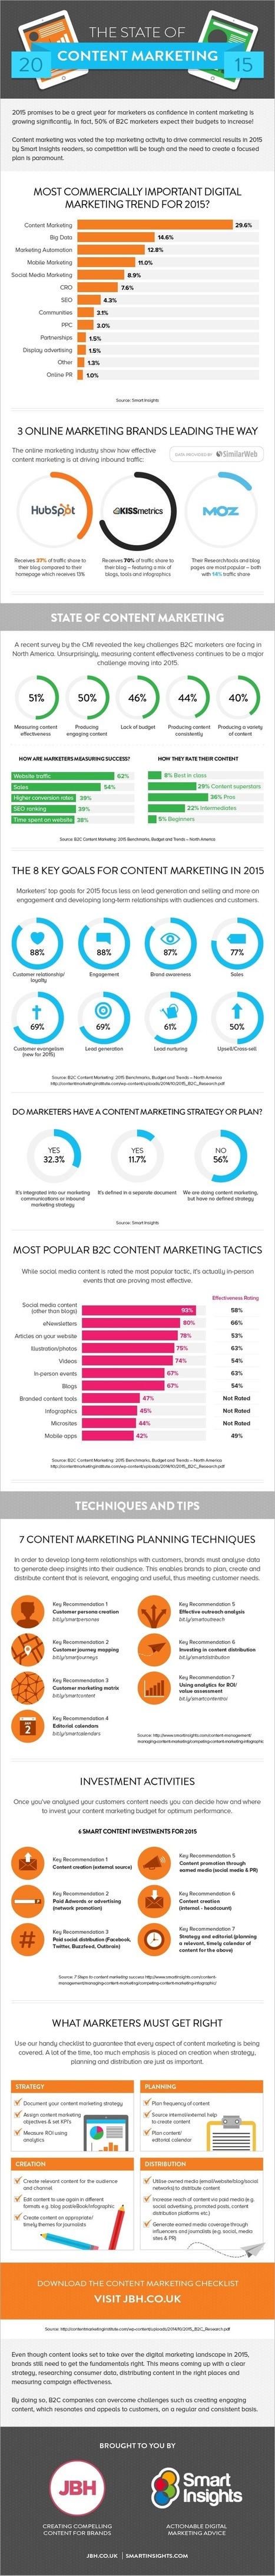 Infographic: The State of Content Marketing in 2015 - Similarweb Blog | Digital Brand Marketing | Scoop.it